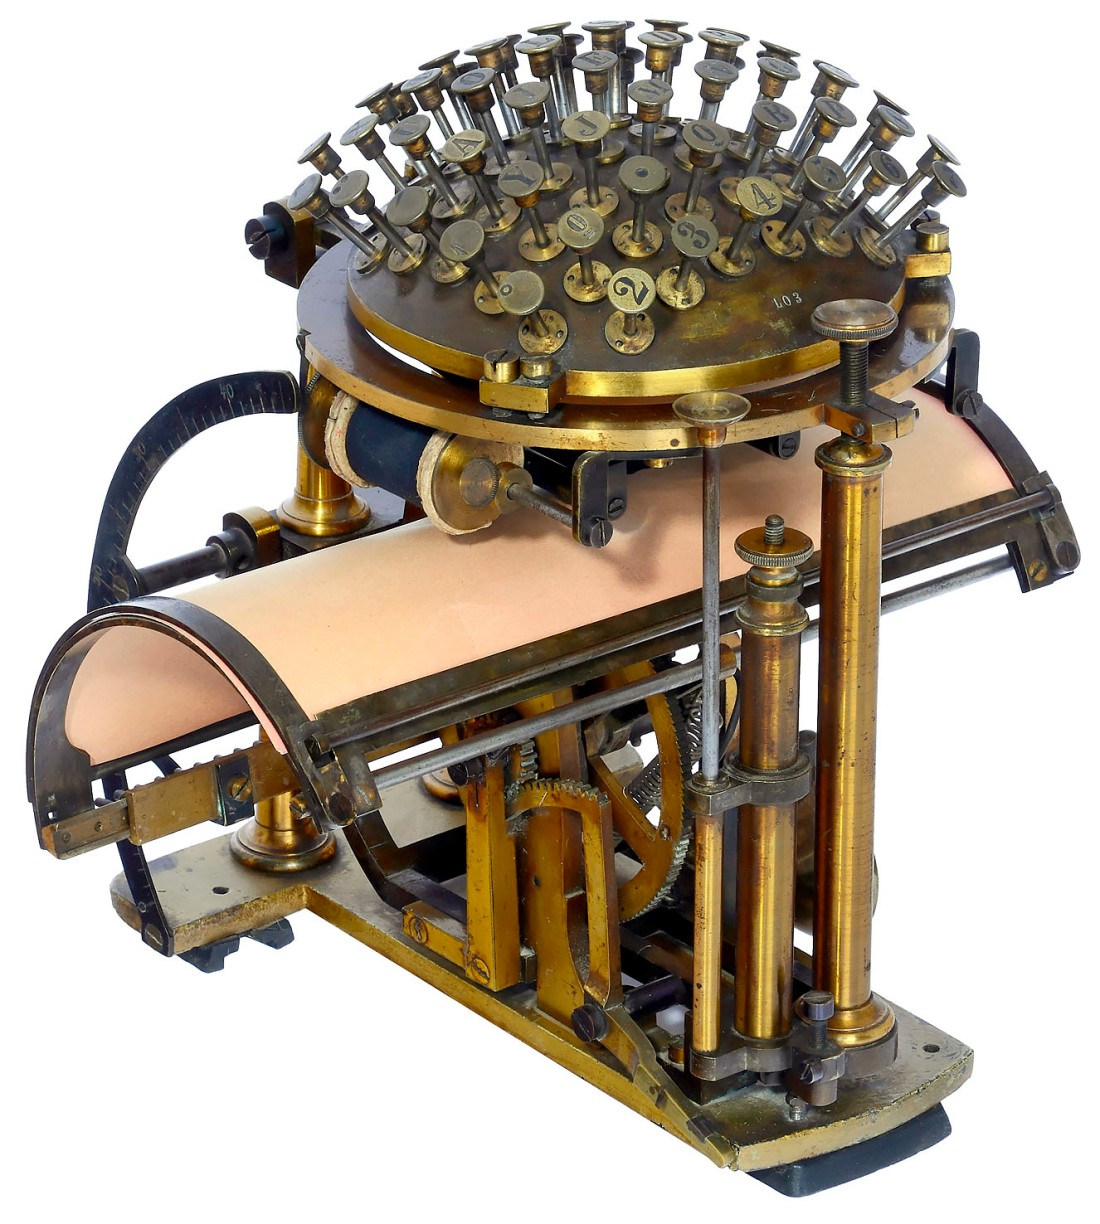 """A Malling-Hansen """"Writing Ball"""", an early typewriter, shown in three-quarter view. Its semi-circular keyboard appears above its curved typing surface."""